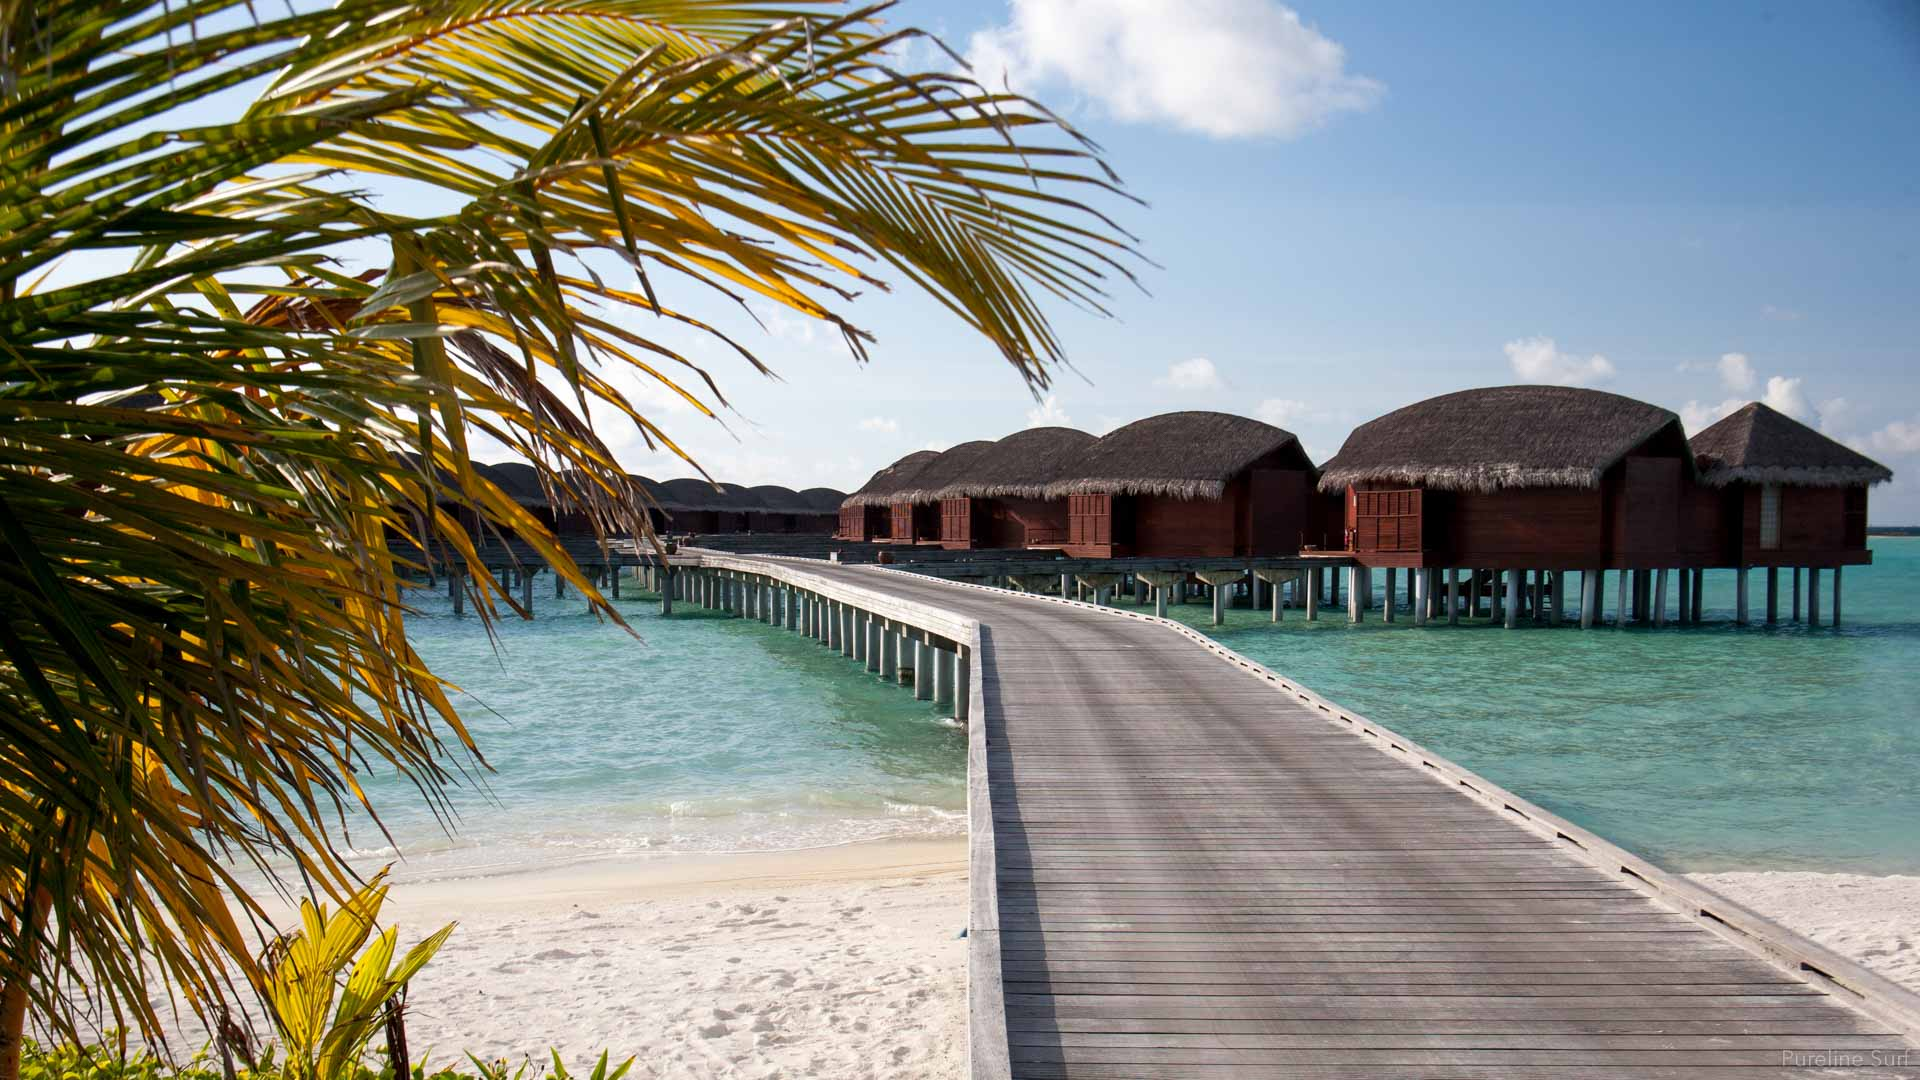 Overwater bungalows at a 6 star resort in the Maldives.